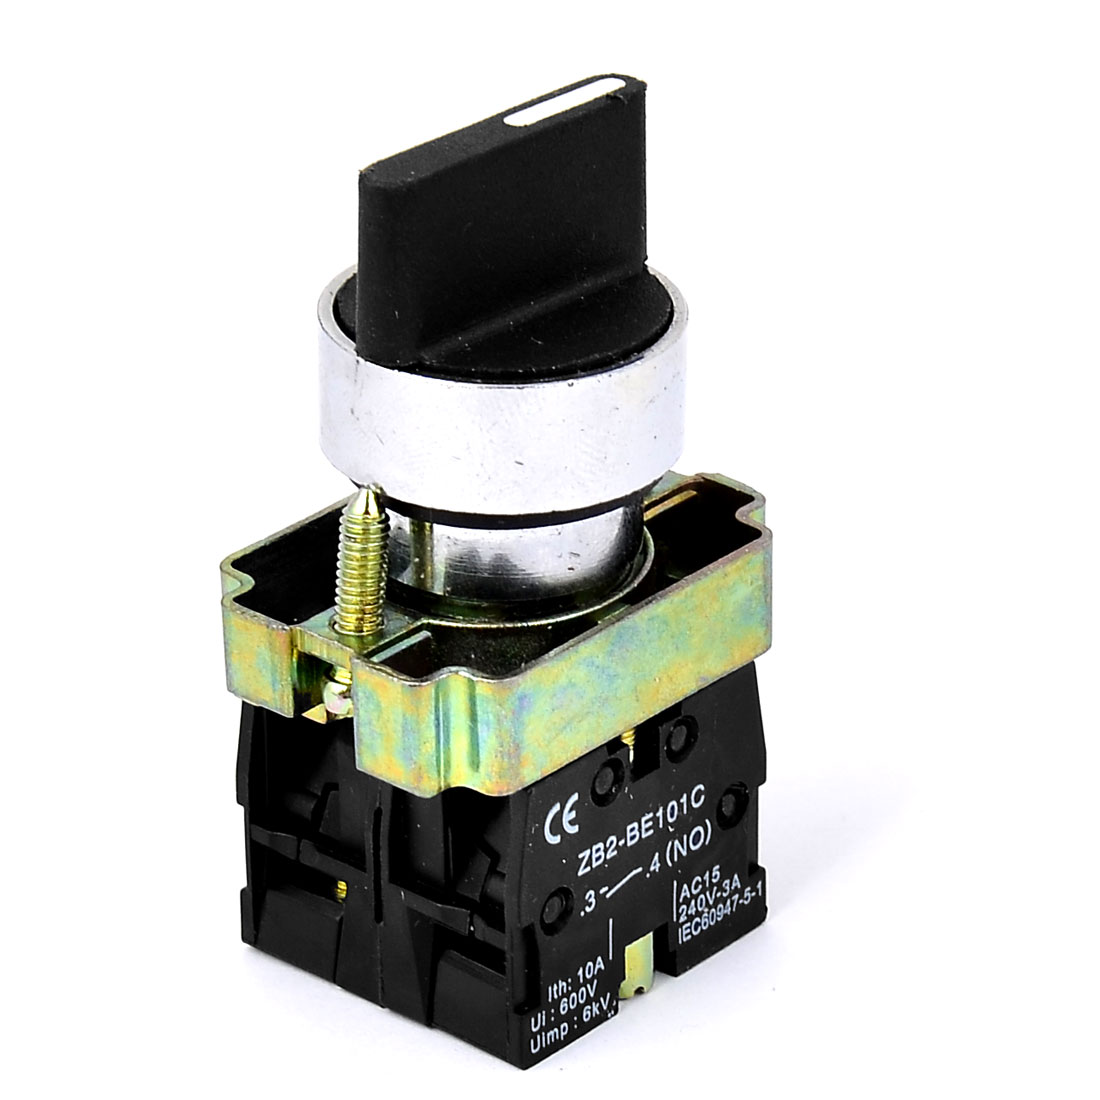 XB2-BD33 AC 600V 10A 6KV 3-Position Latching Rotary Selector Switch